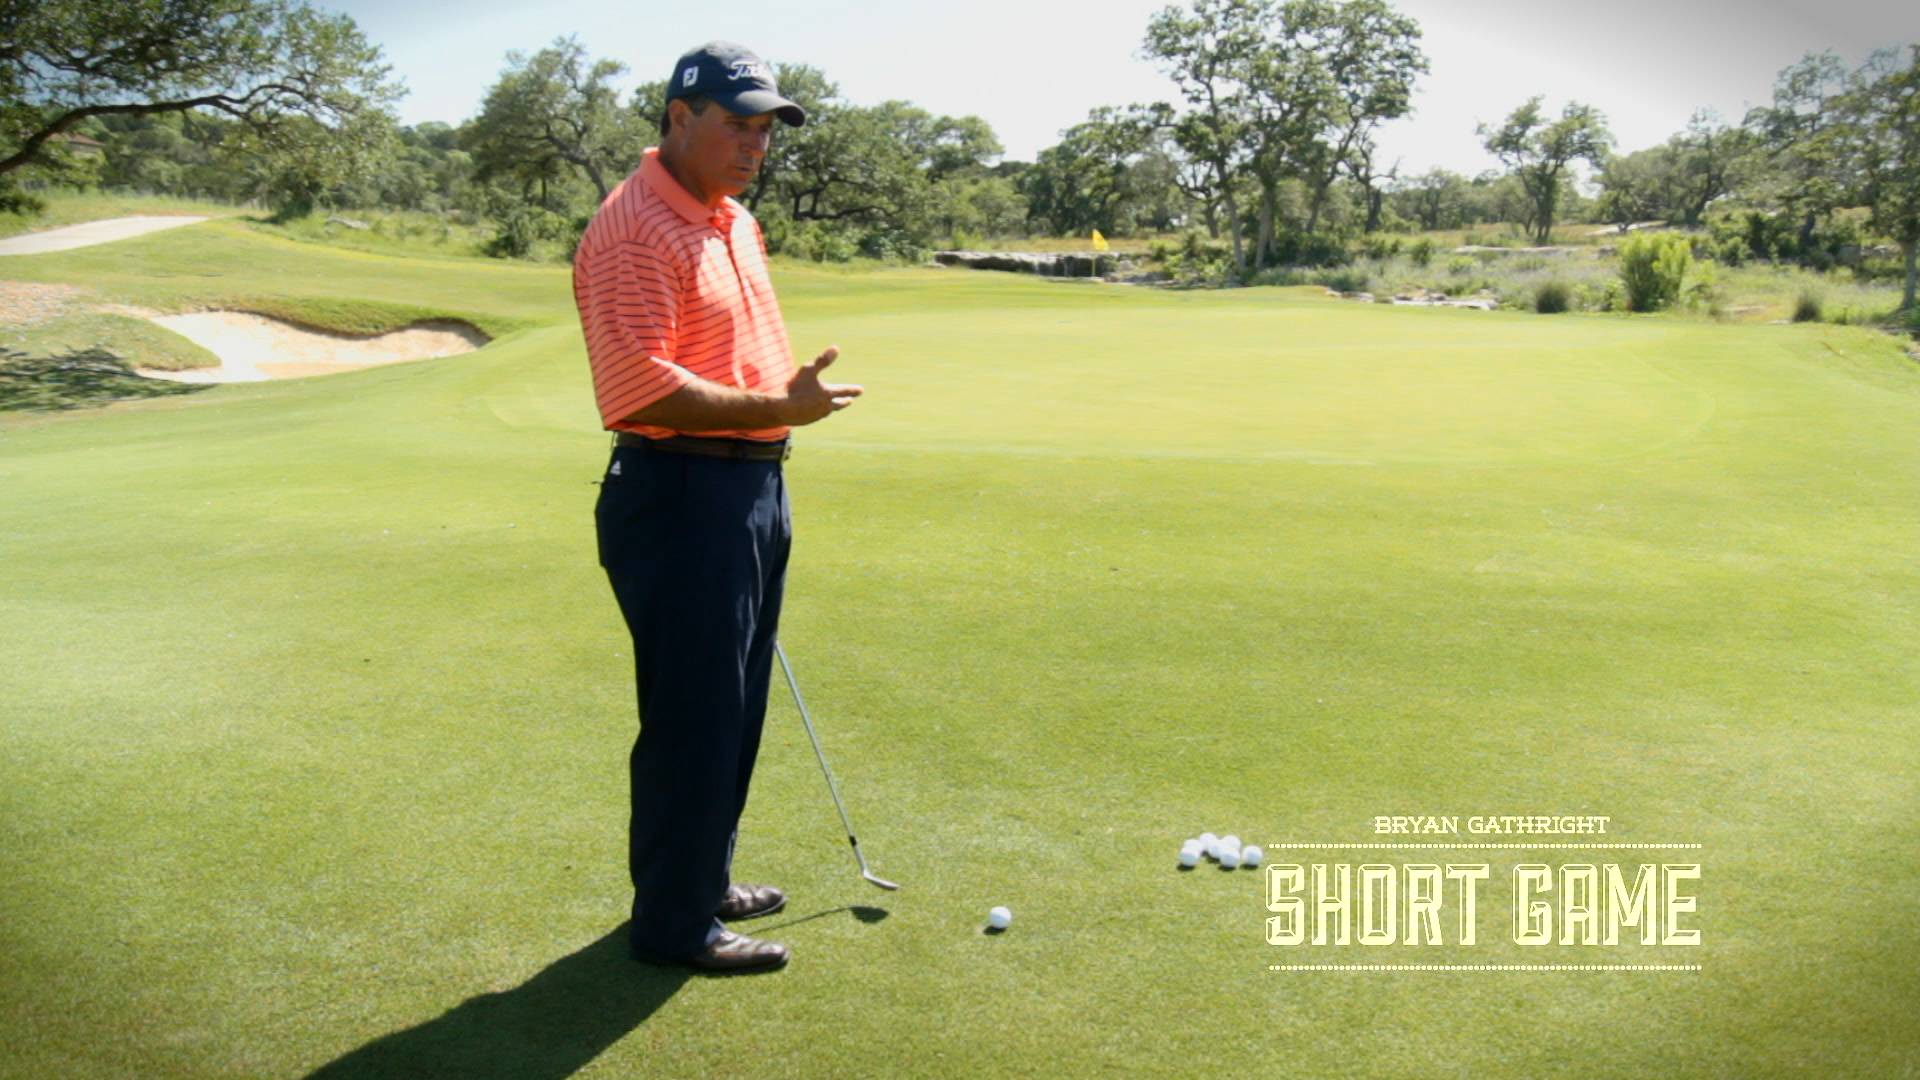 Release and Rotation is Fundamental to Good Wedge Shots